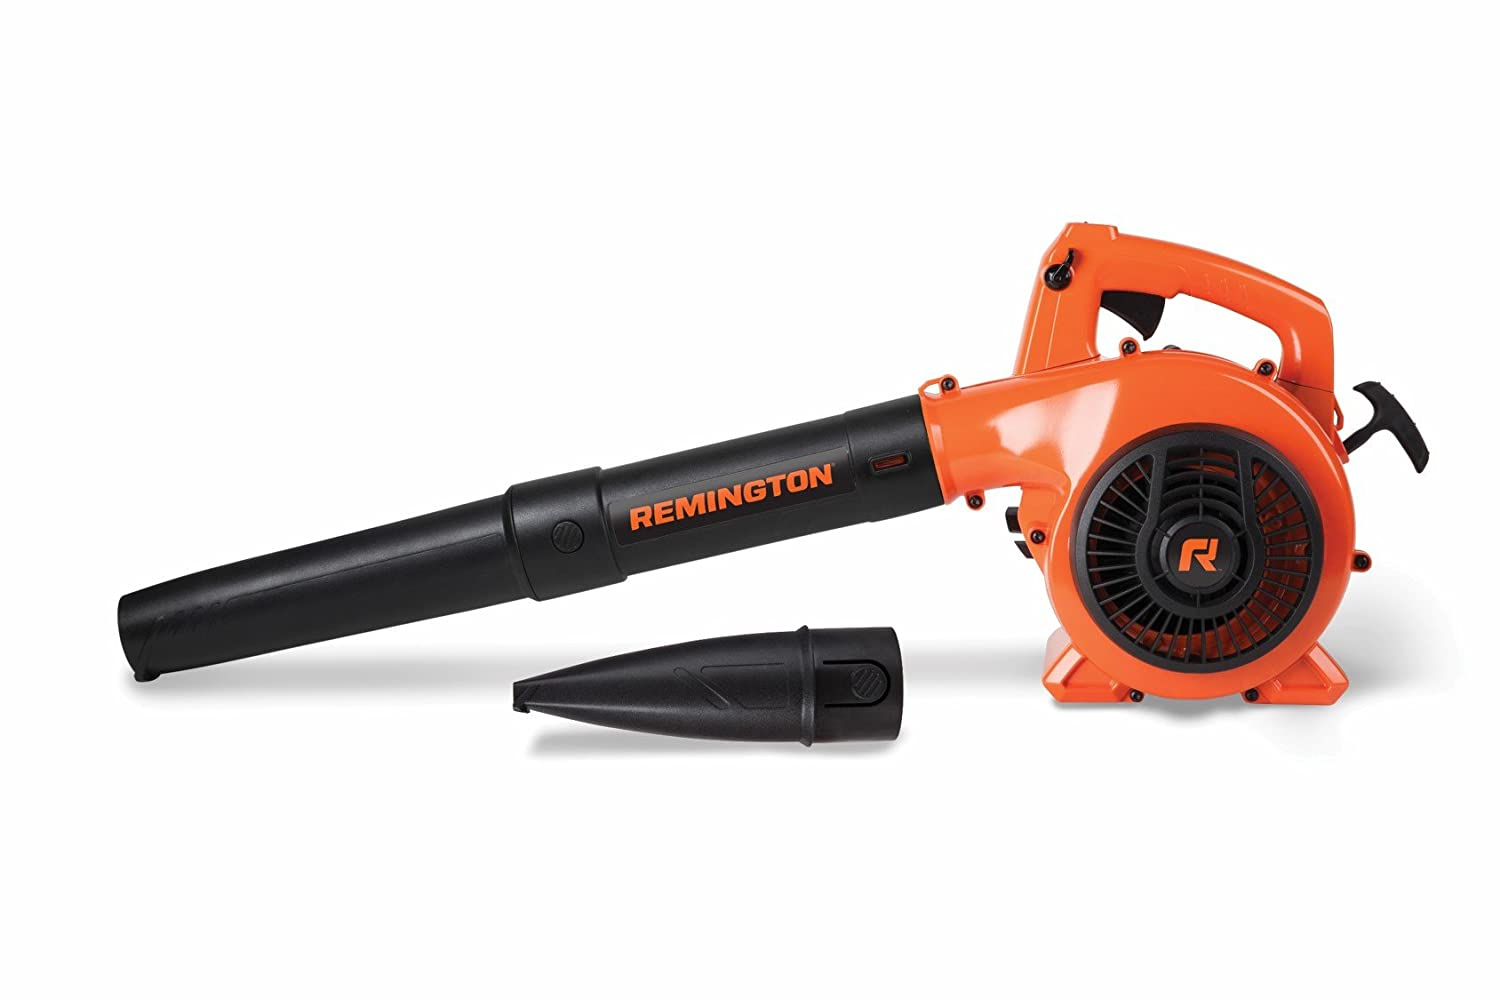 amazon com remington rm430 hero 25cc 2 cycle gas blower garden